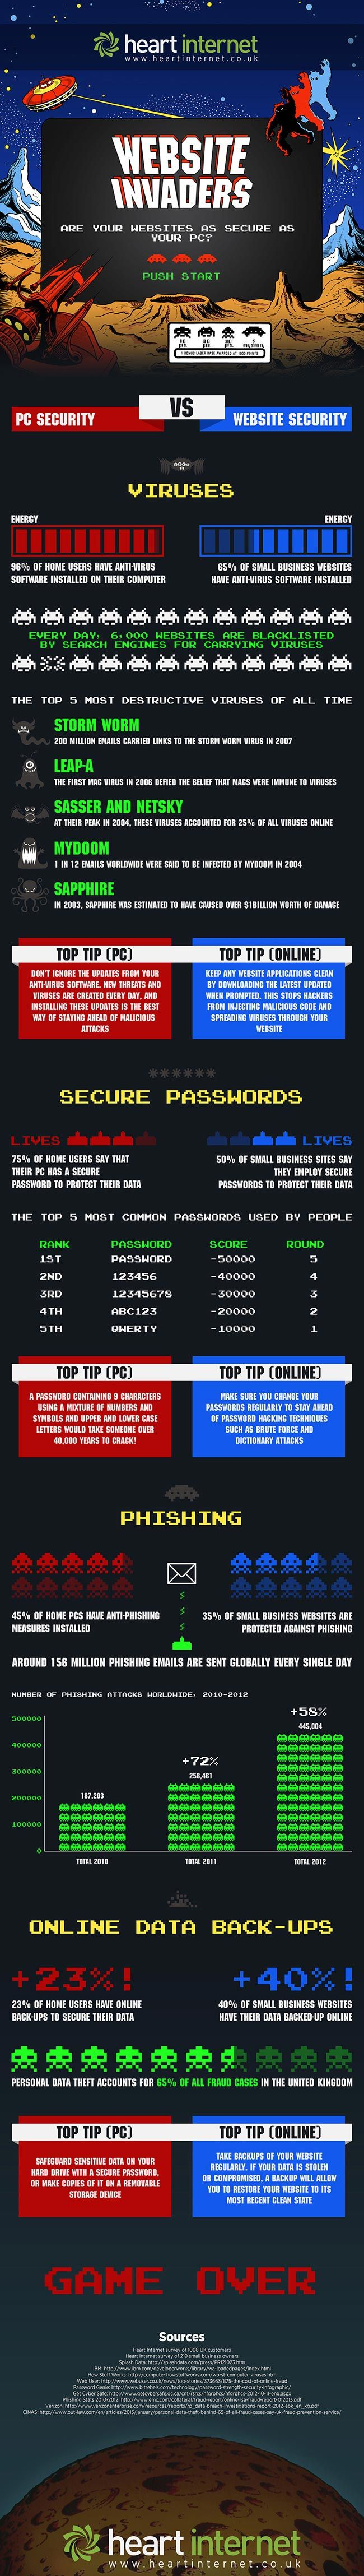 Website Invaders: PC Security vs. Website Security [Infographic